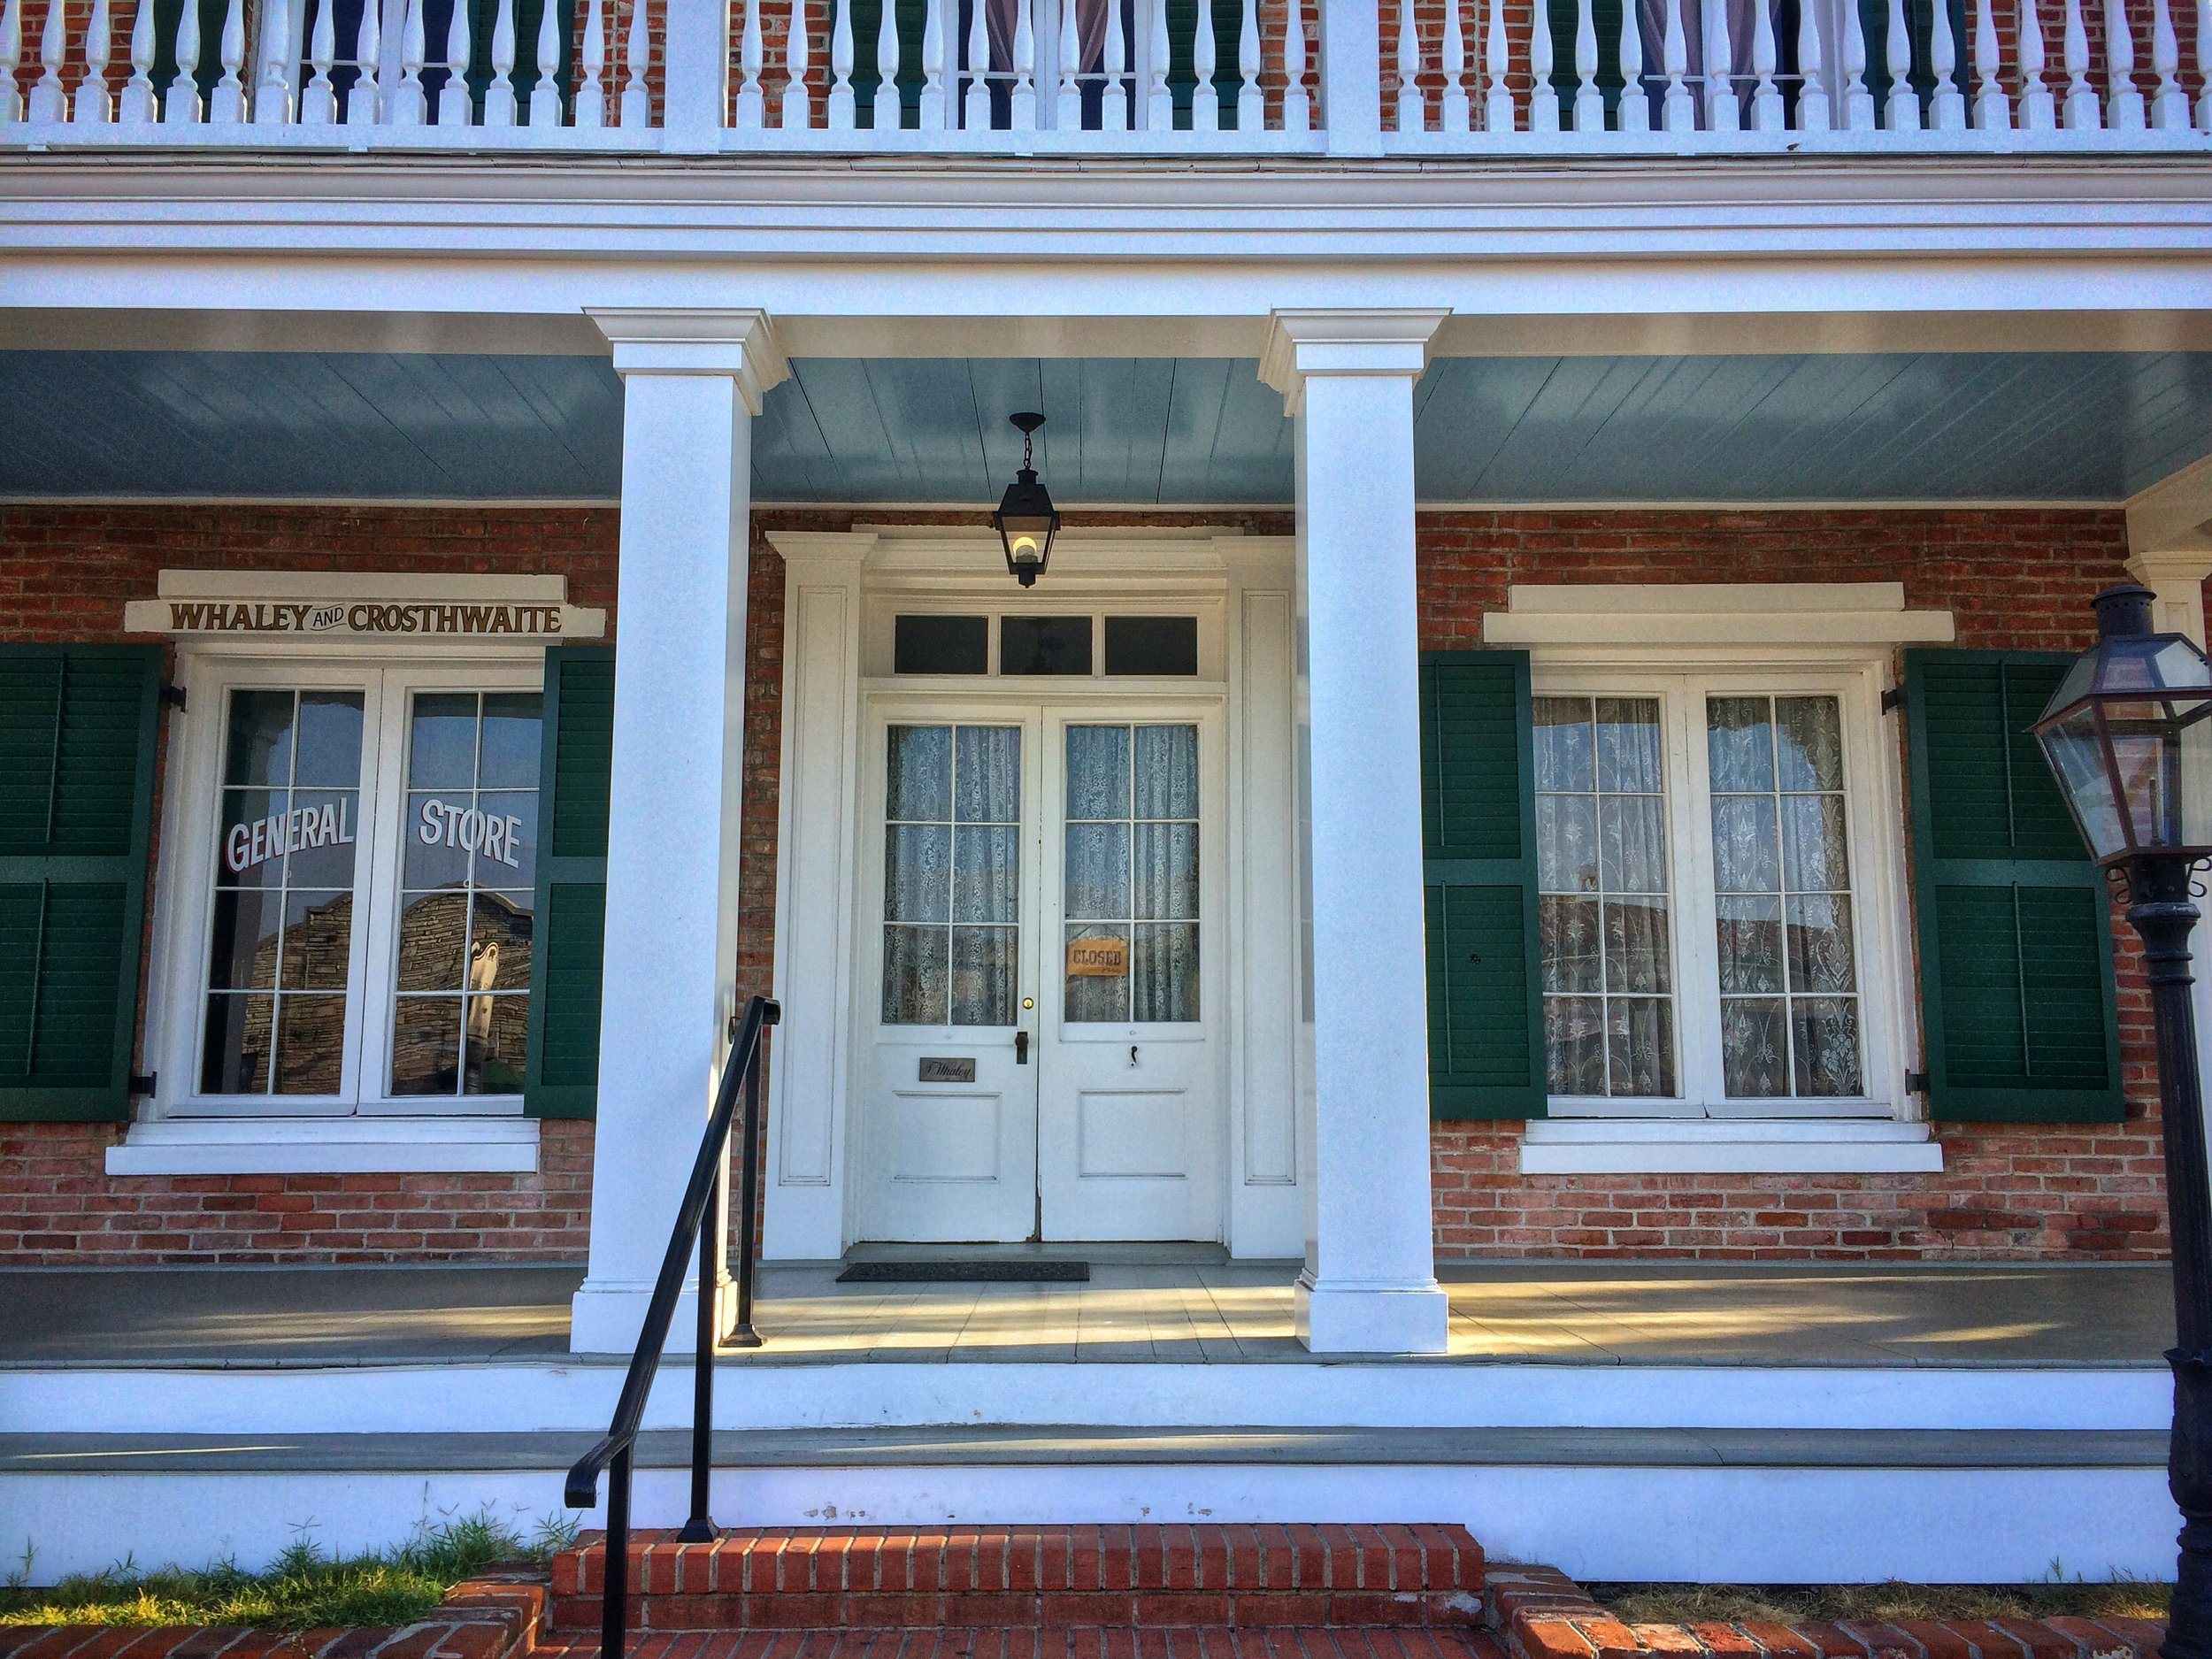 The Whaley House is rumored to be haunted by numerous ghosts, including that of Yankee Jim